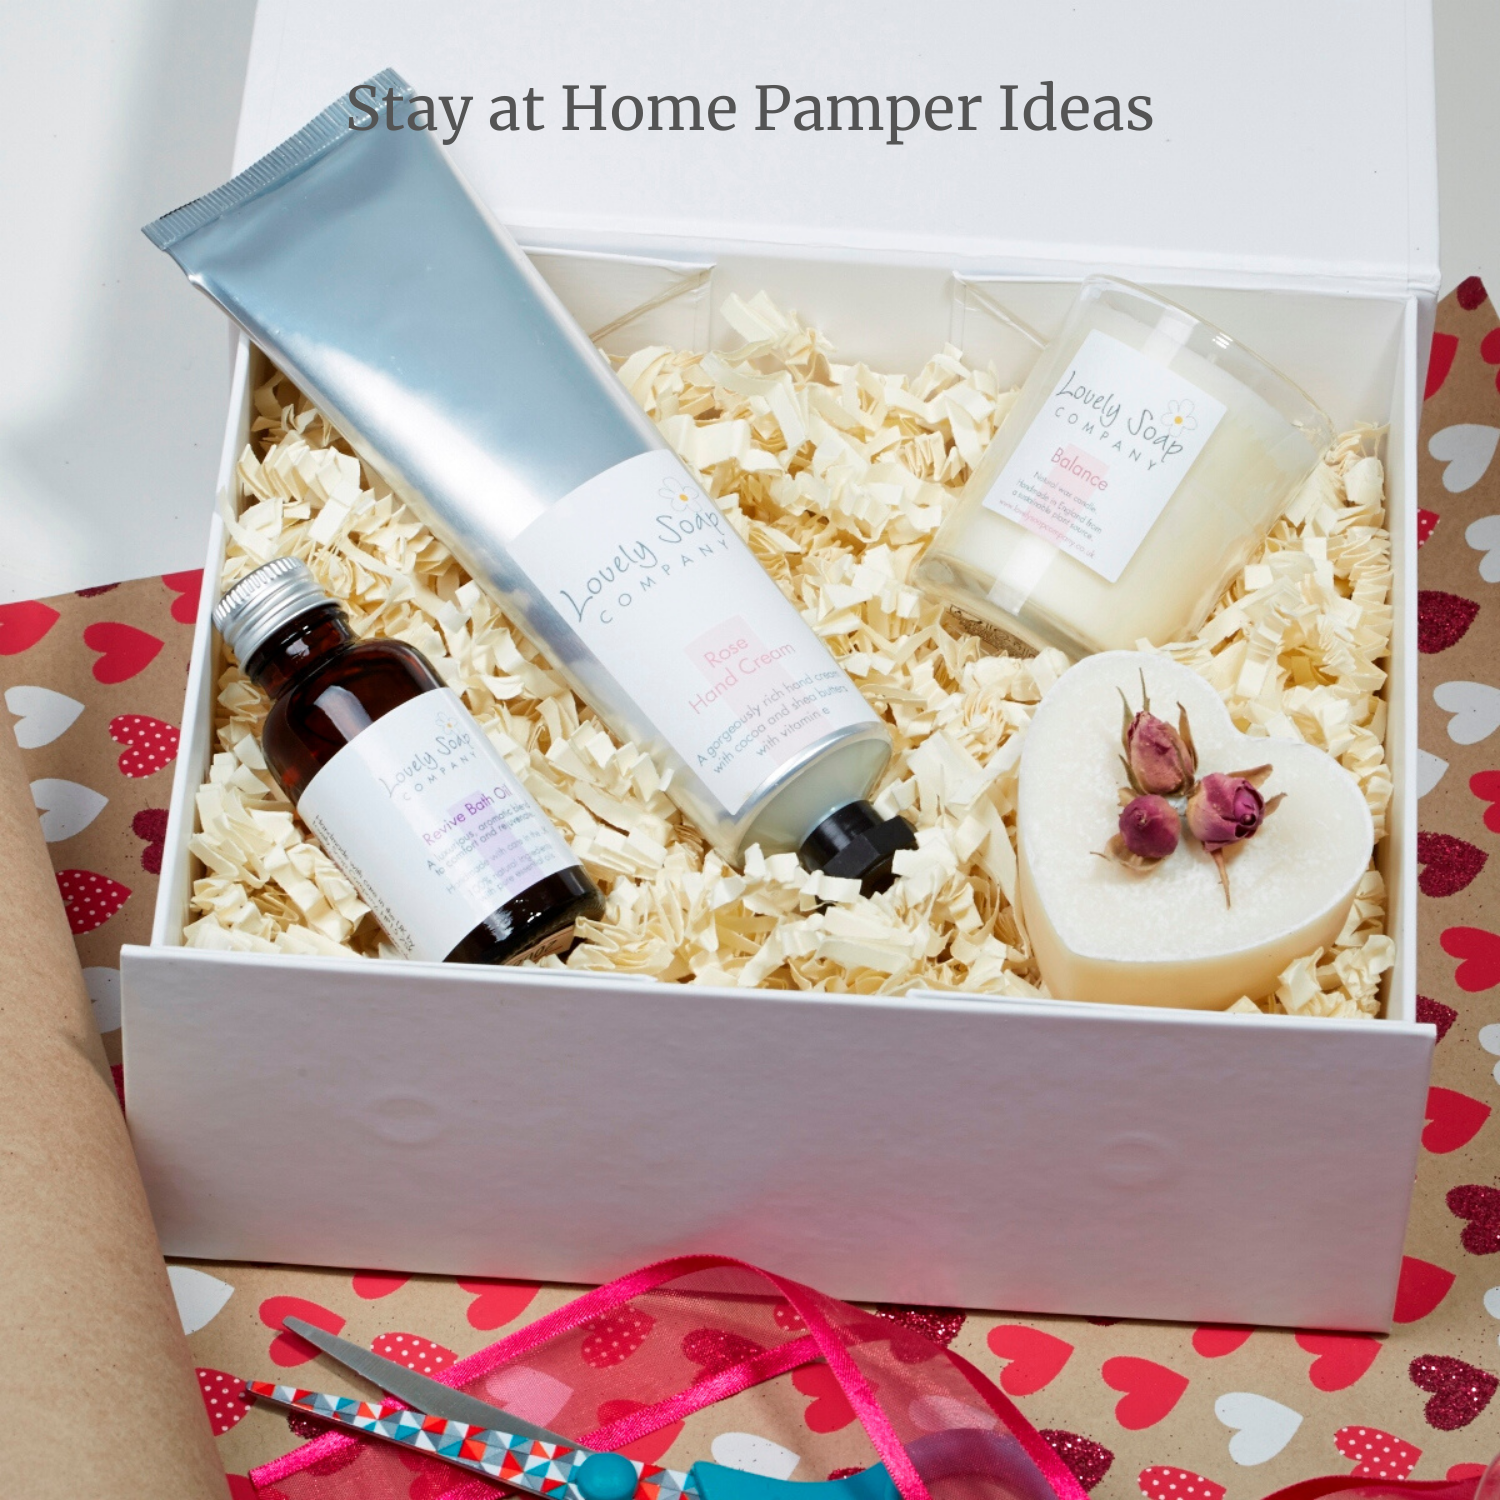 Aromatherapy Spa at home gift by Lovely Soap Co